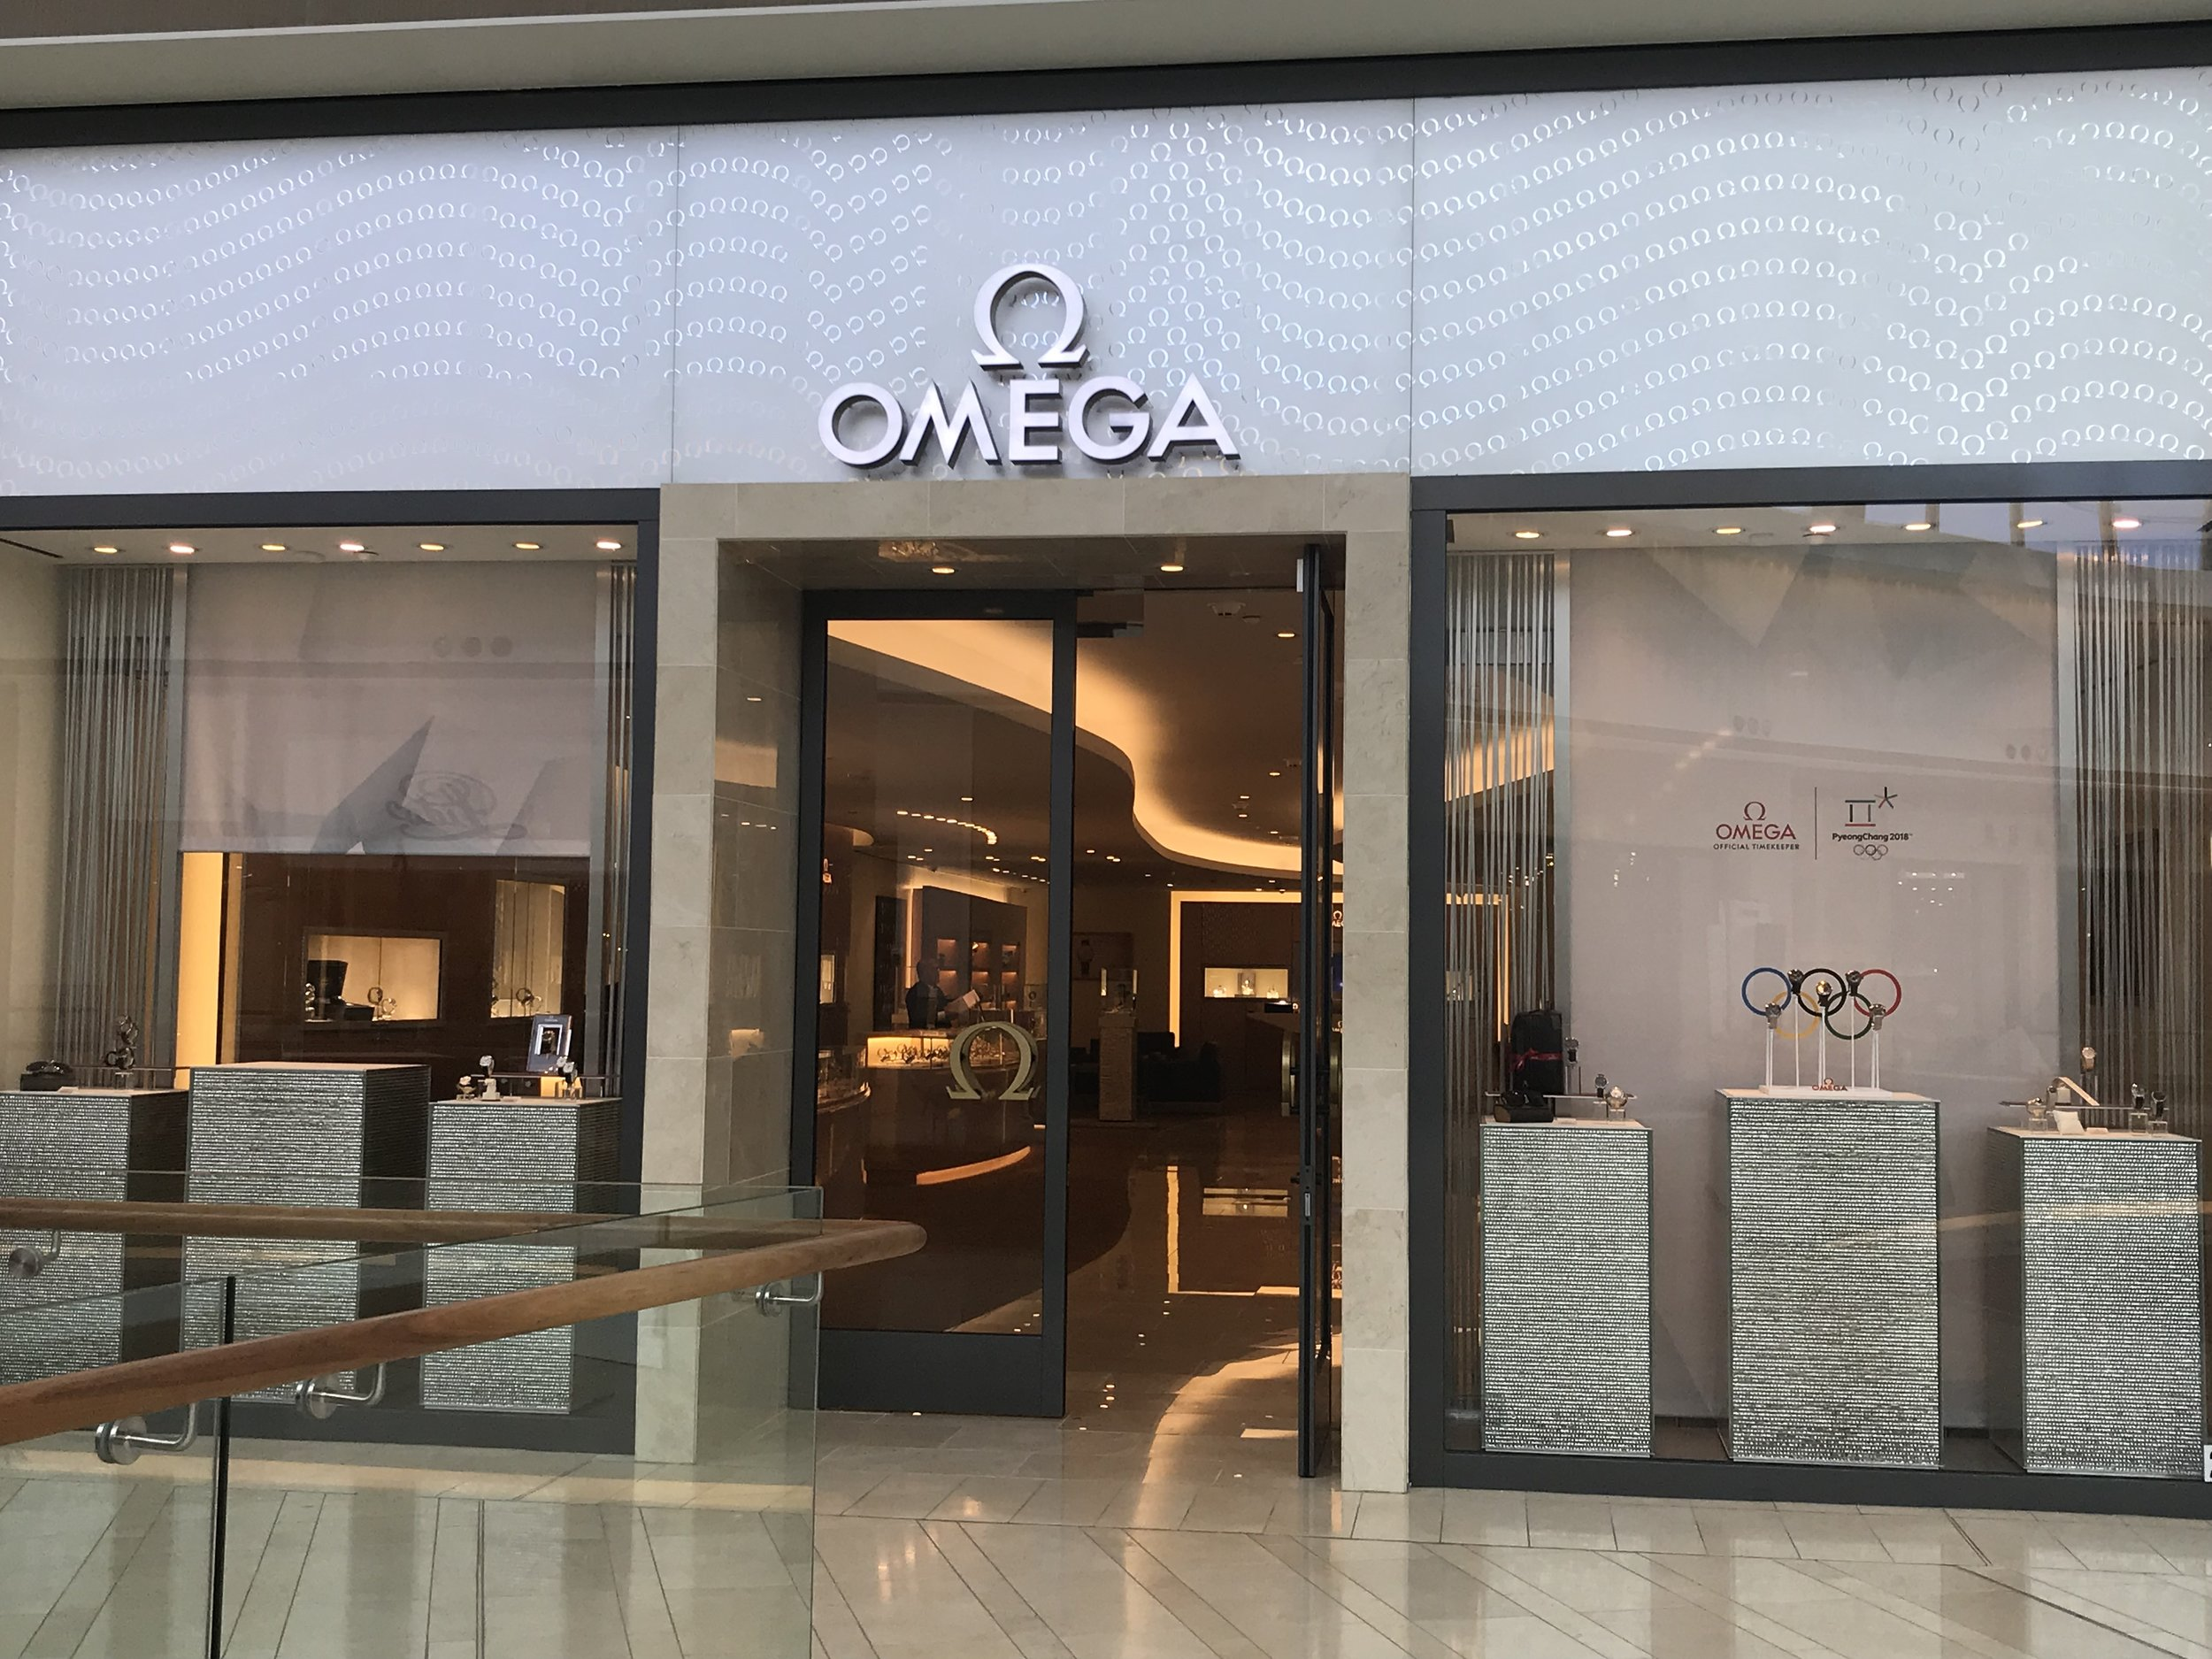 Complimentary 50ml OMEGA AQUA TERRA fragrance with a single purchase of $3,000 or more. -